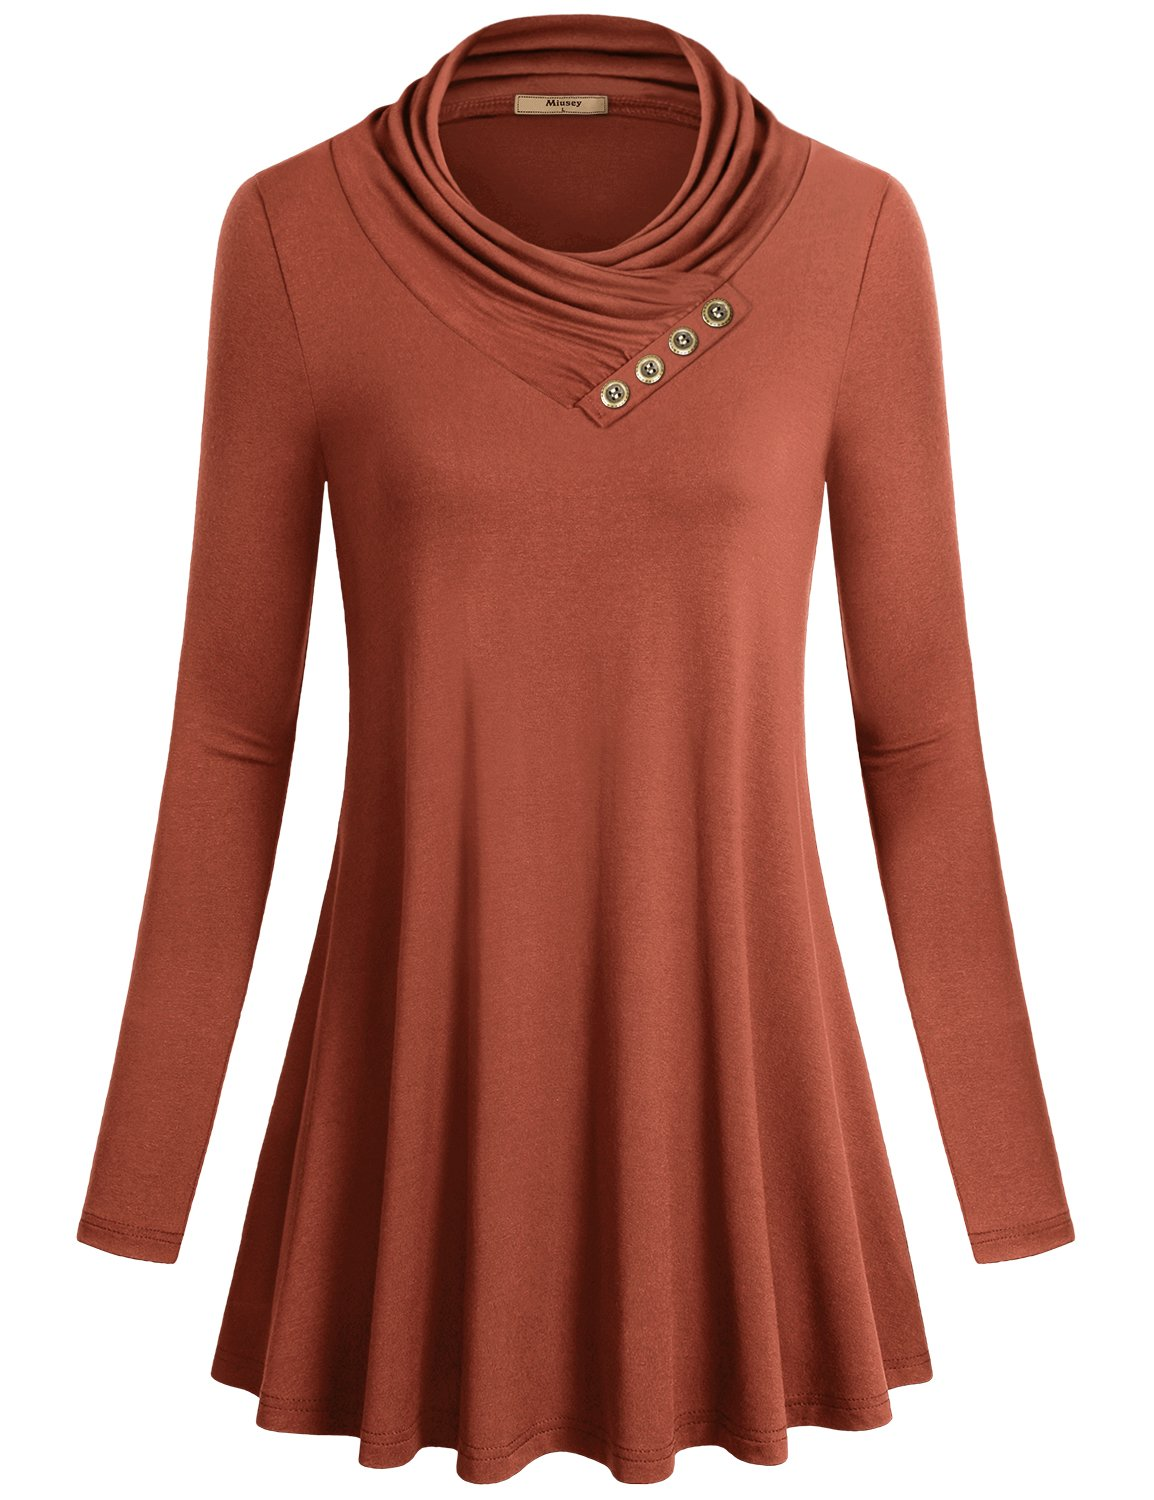 922adaadbbc64 Galleon - Miusey Boutique Clothing, Women Long Sleeve Cowl Neck A Line Loose  Fit Comfy Draped Flowy Tunic Casual Top Rust Medium